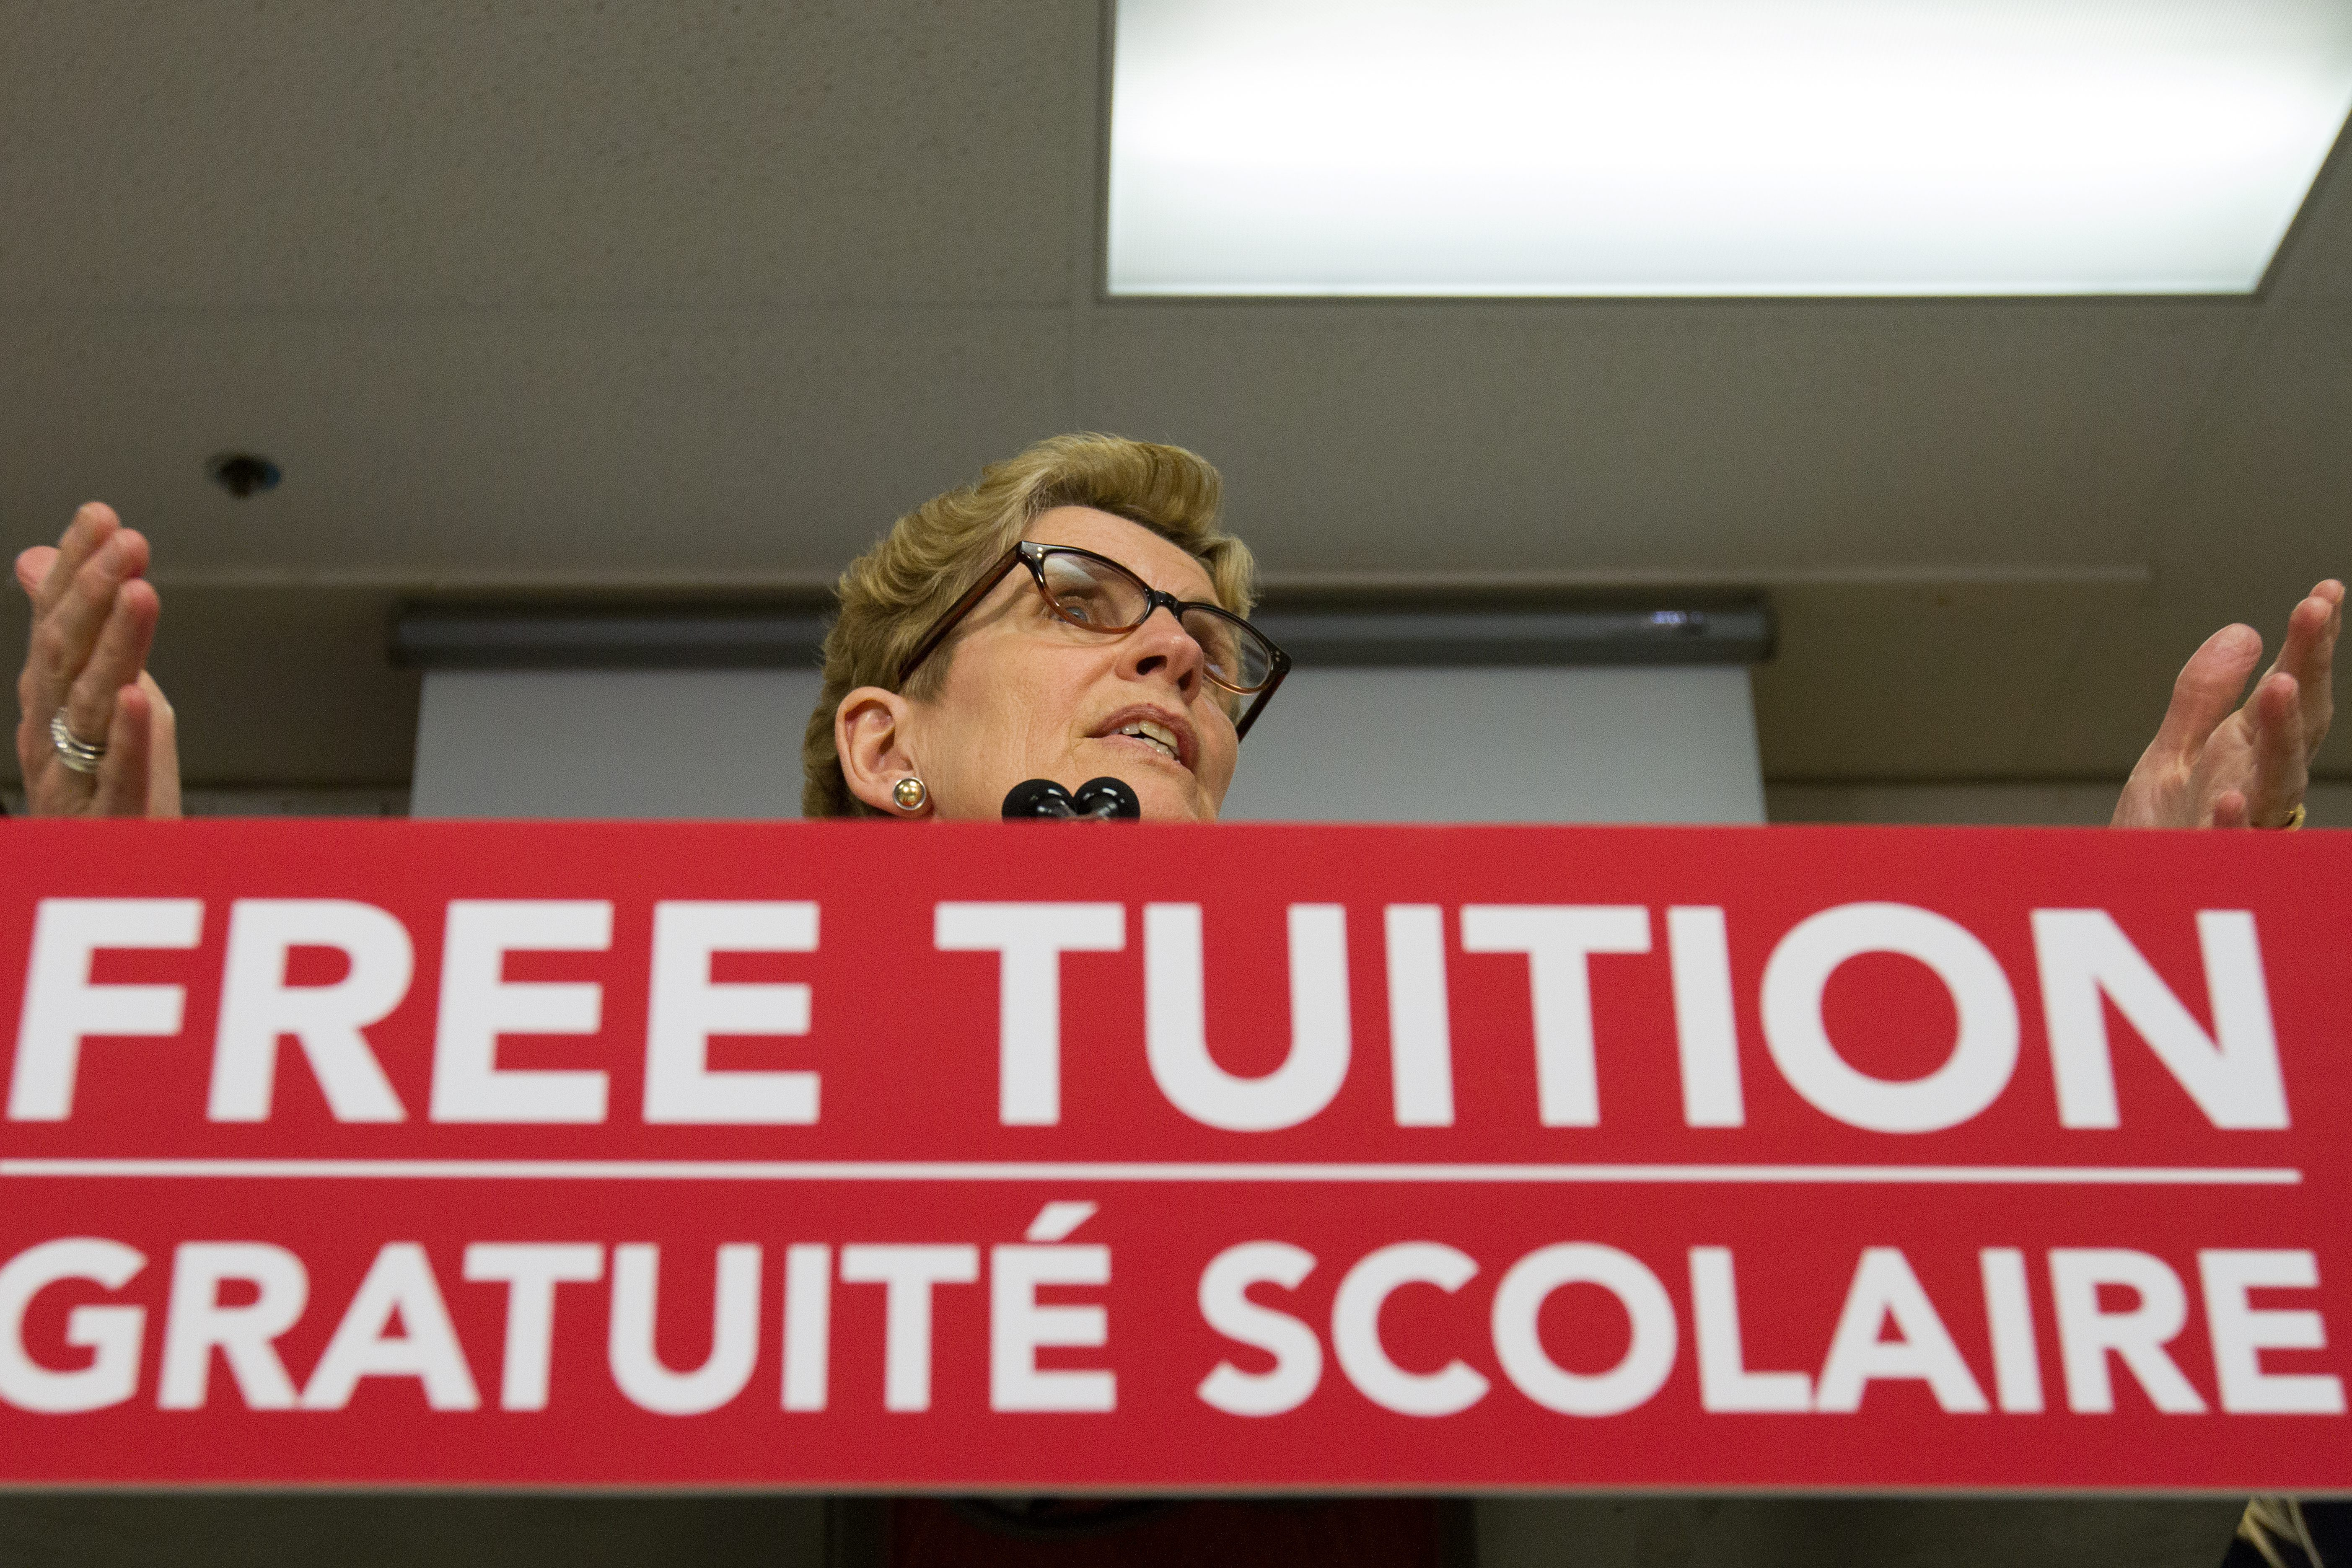 Ontario Premier Kathleen Wynne announces a new free tuition grant for students going into secondary education...